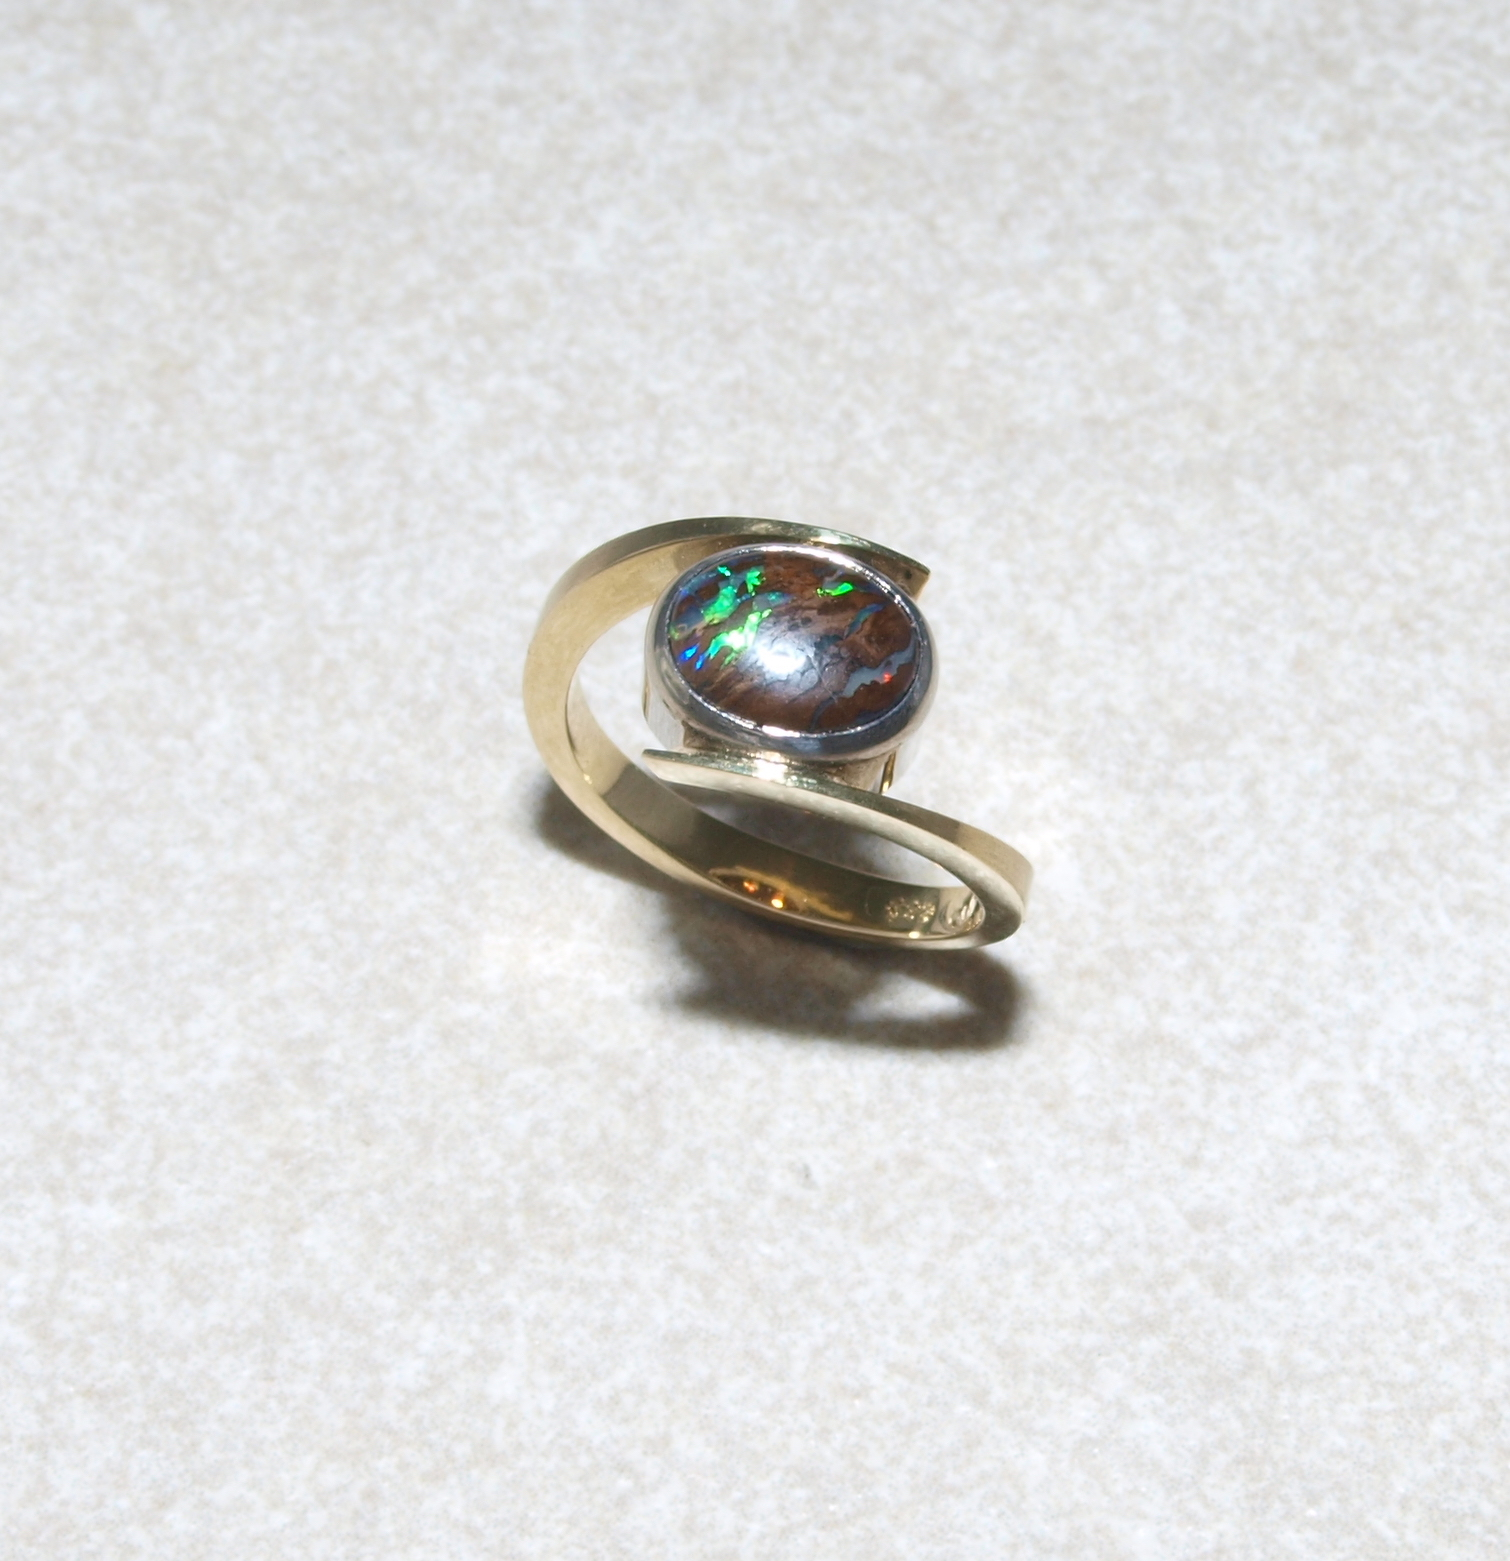 Boulderopal in 585 Gold